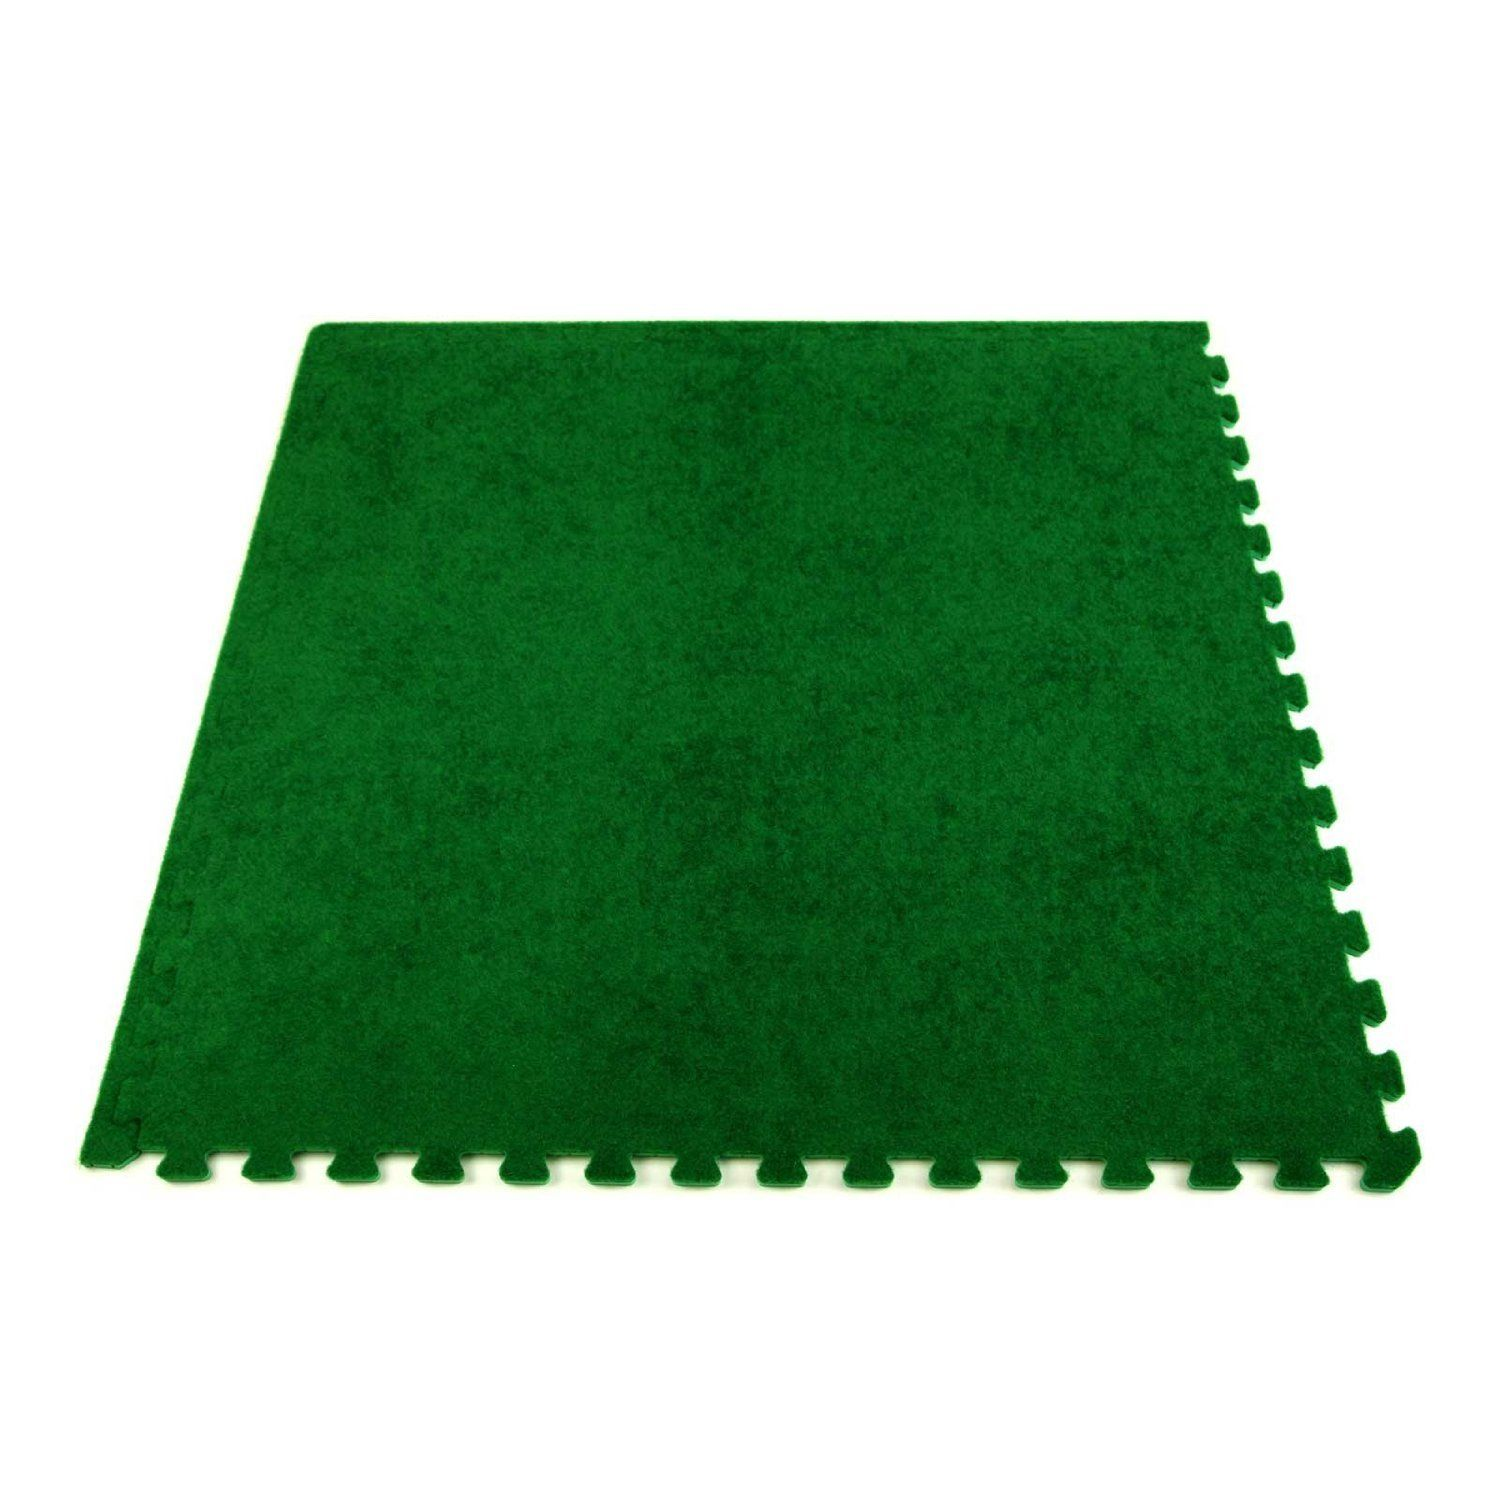 Incstores soft turf tiles ft x ft x in interlocking anti